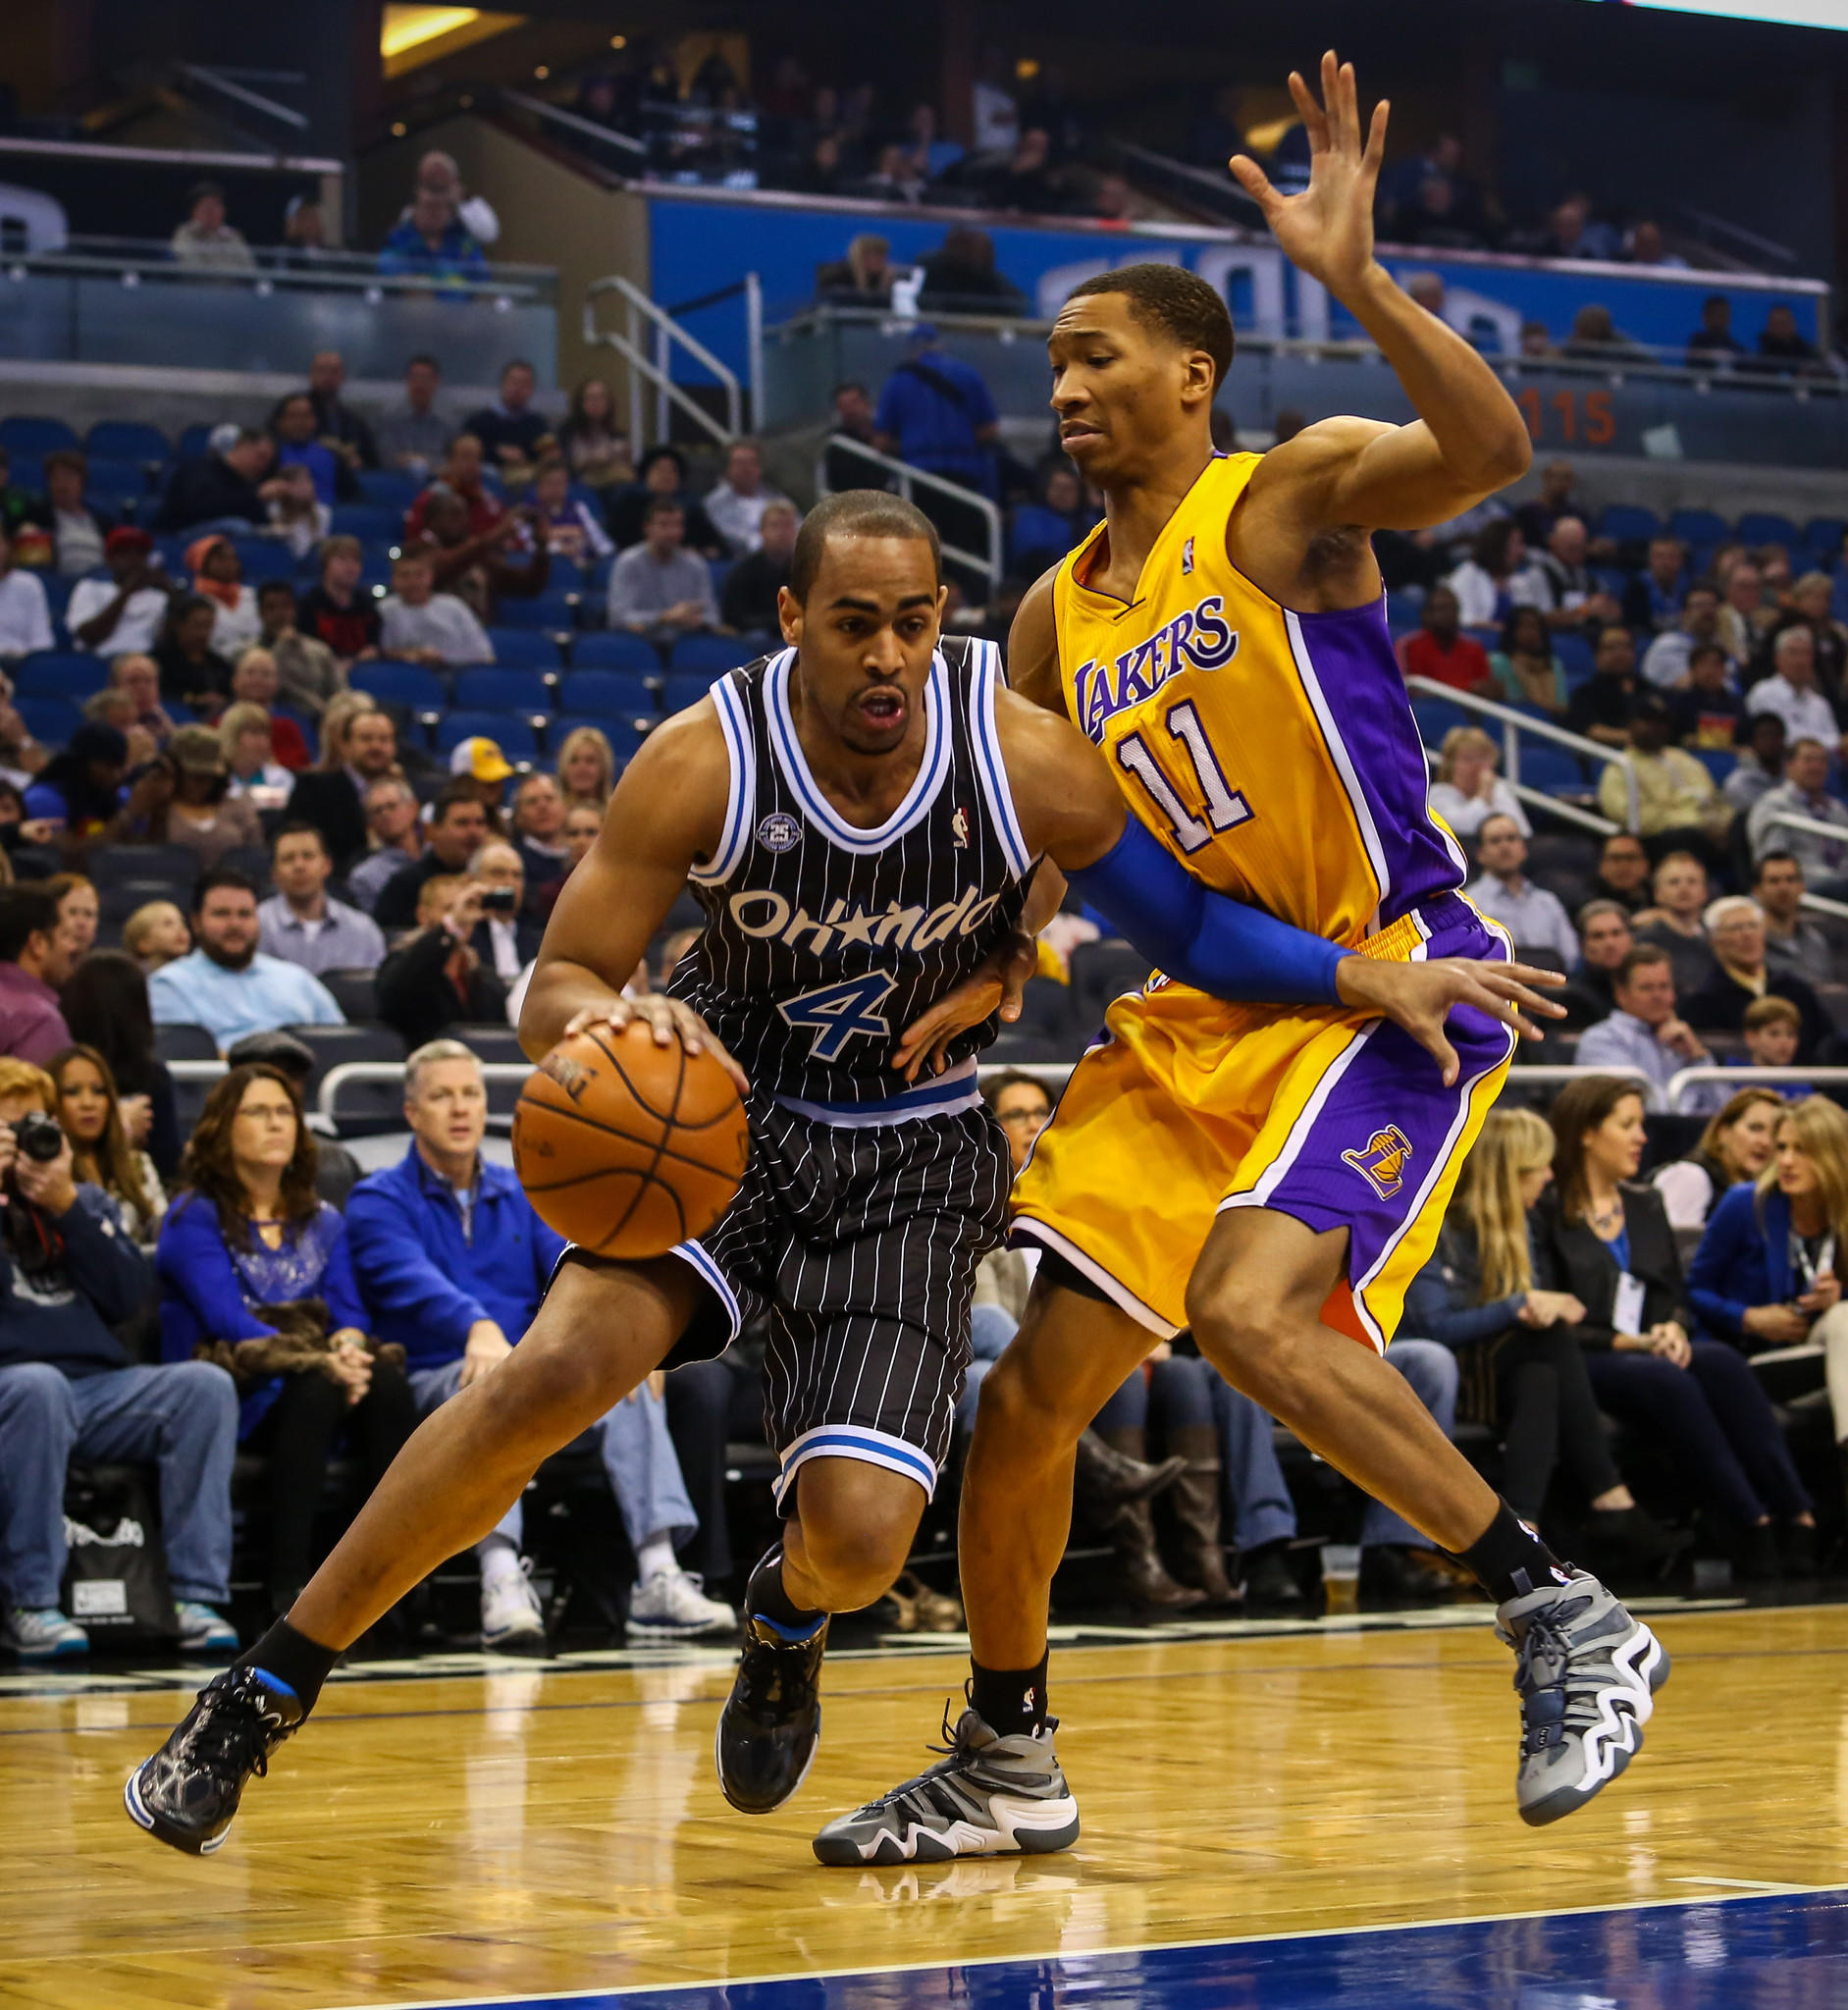 Orlando Magic forward Arron Afflalo (4) drives around the Lakers' Wesley Johnson (11) during first quarter action of an NBA game against the Los Angeles Lakers at Amway Center in Orlando, Fla. on Friday, January 24, 2014.